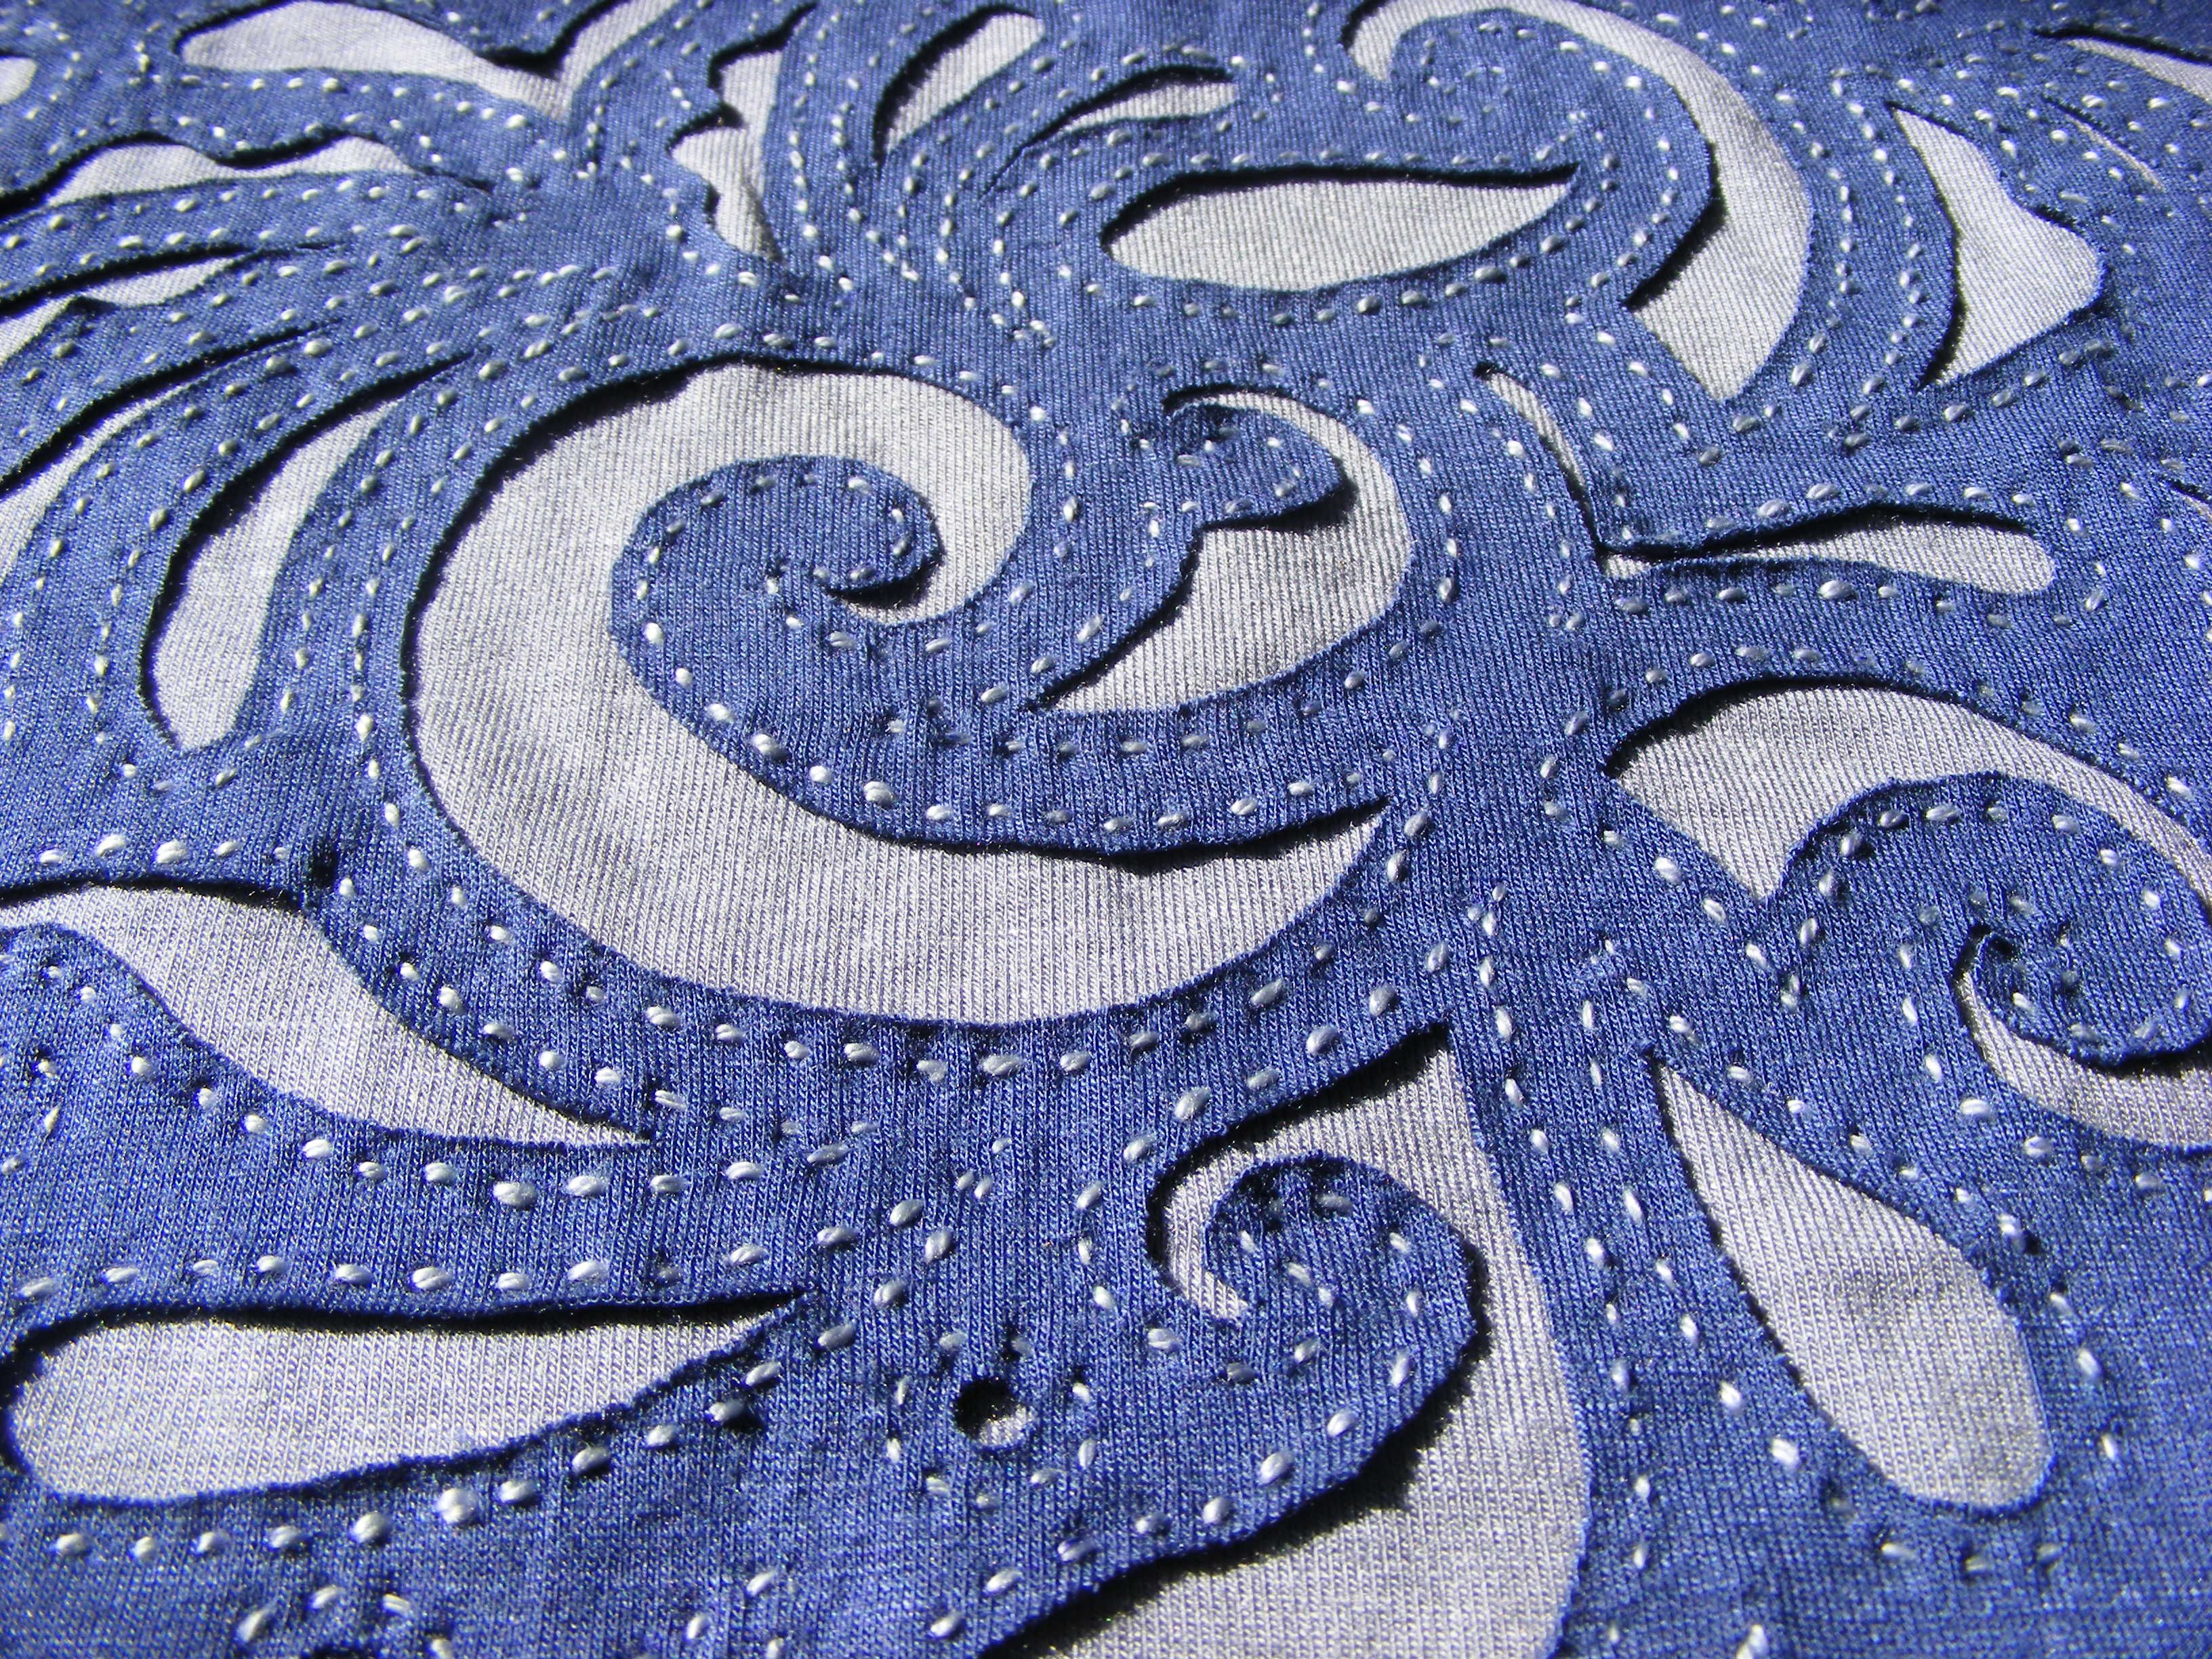 Reverse Applique | QUILTS: Applique | Pinterest